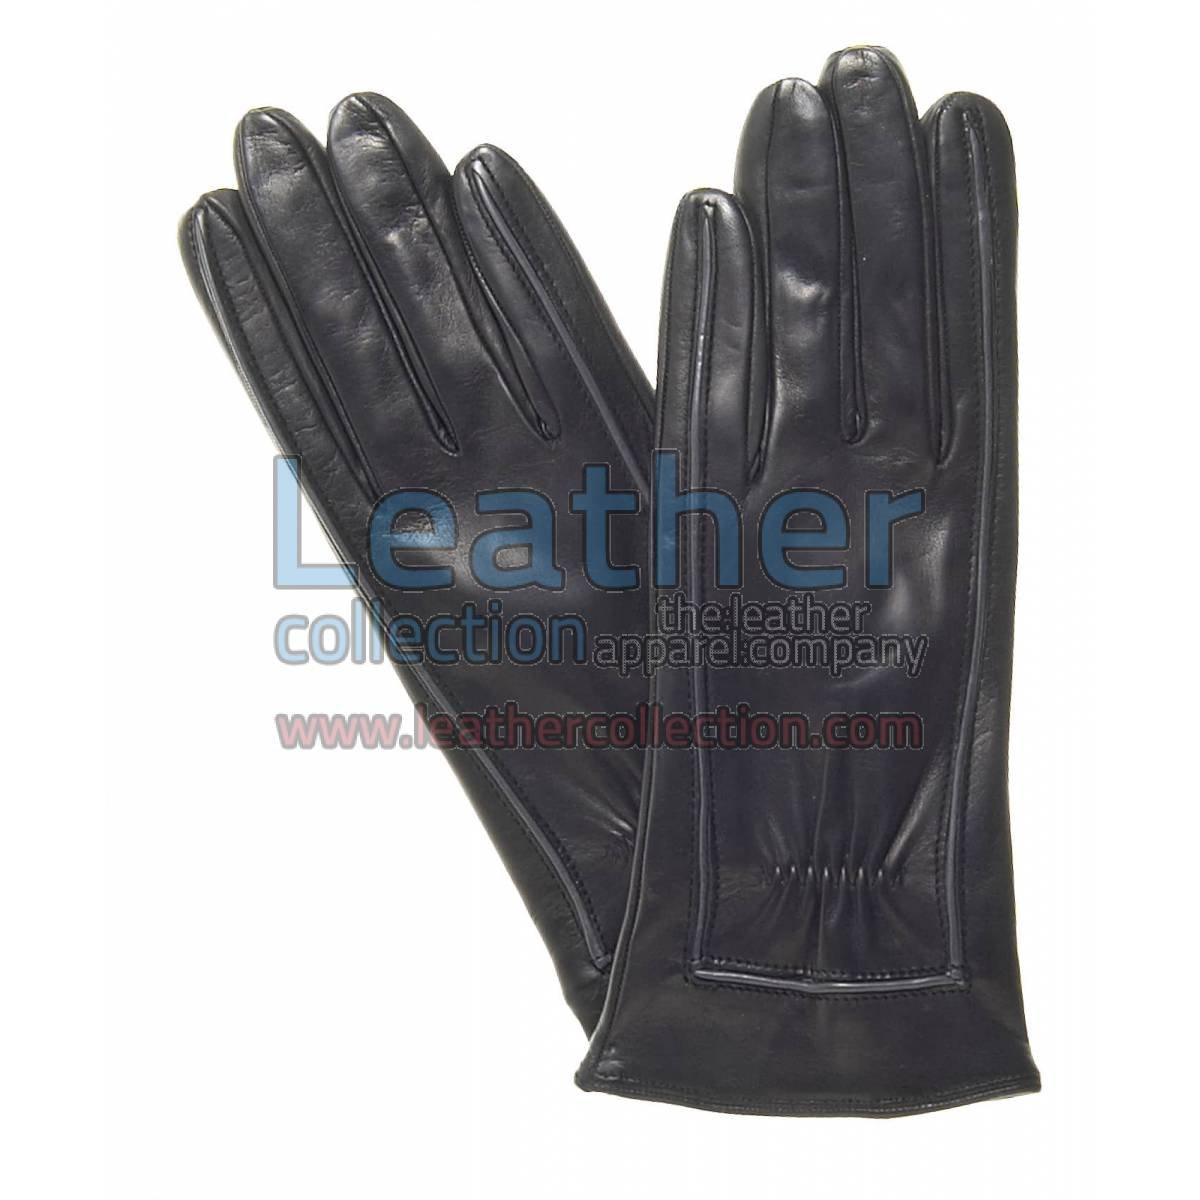 Decorative Stitching Ladies Black Leather Gloves